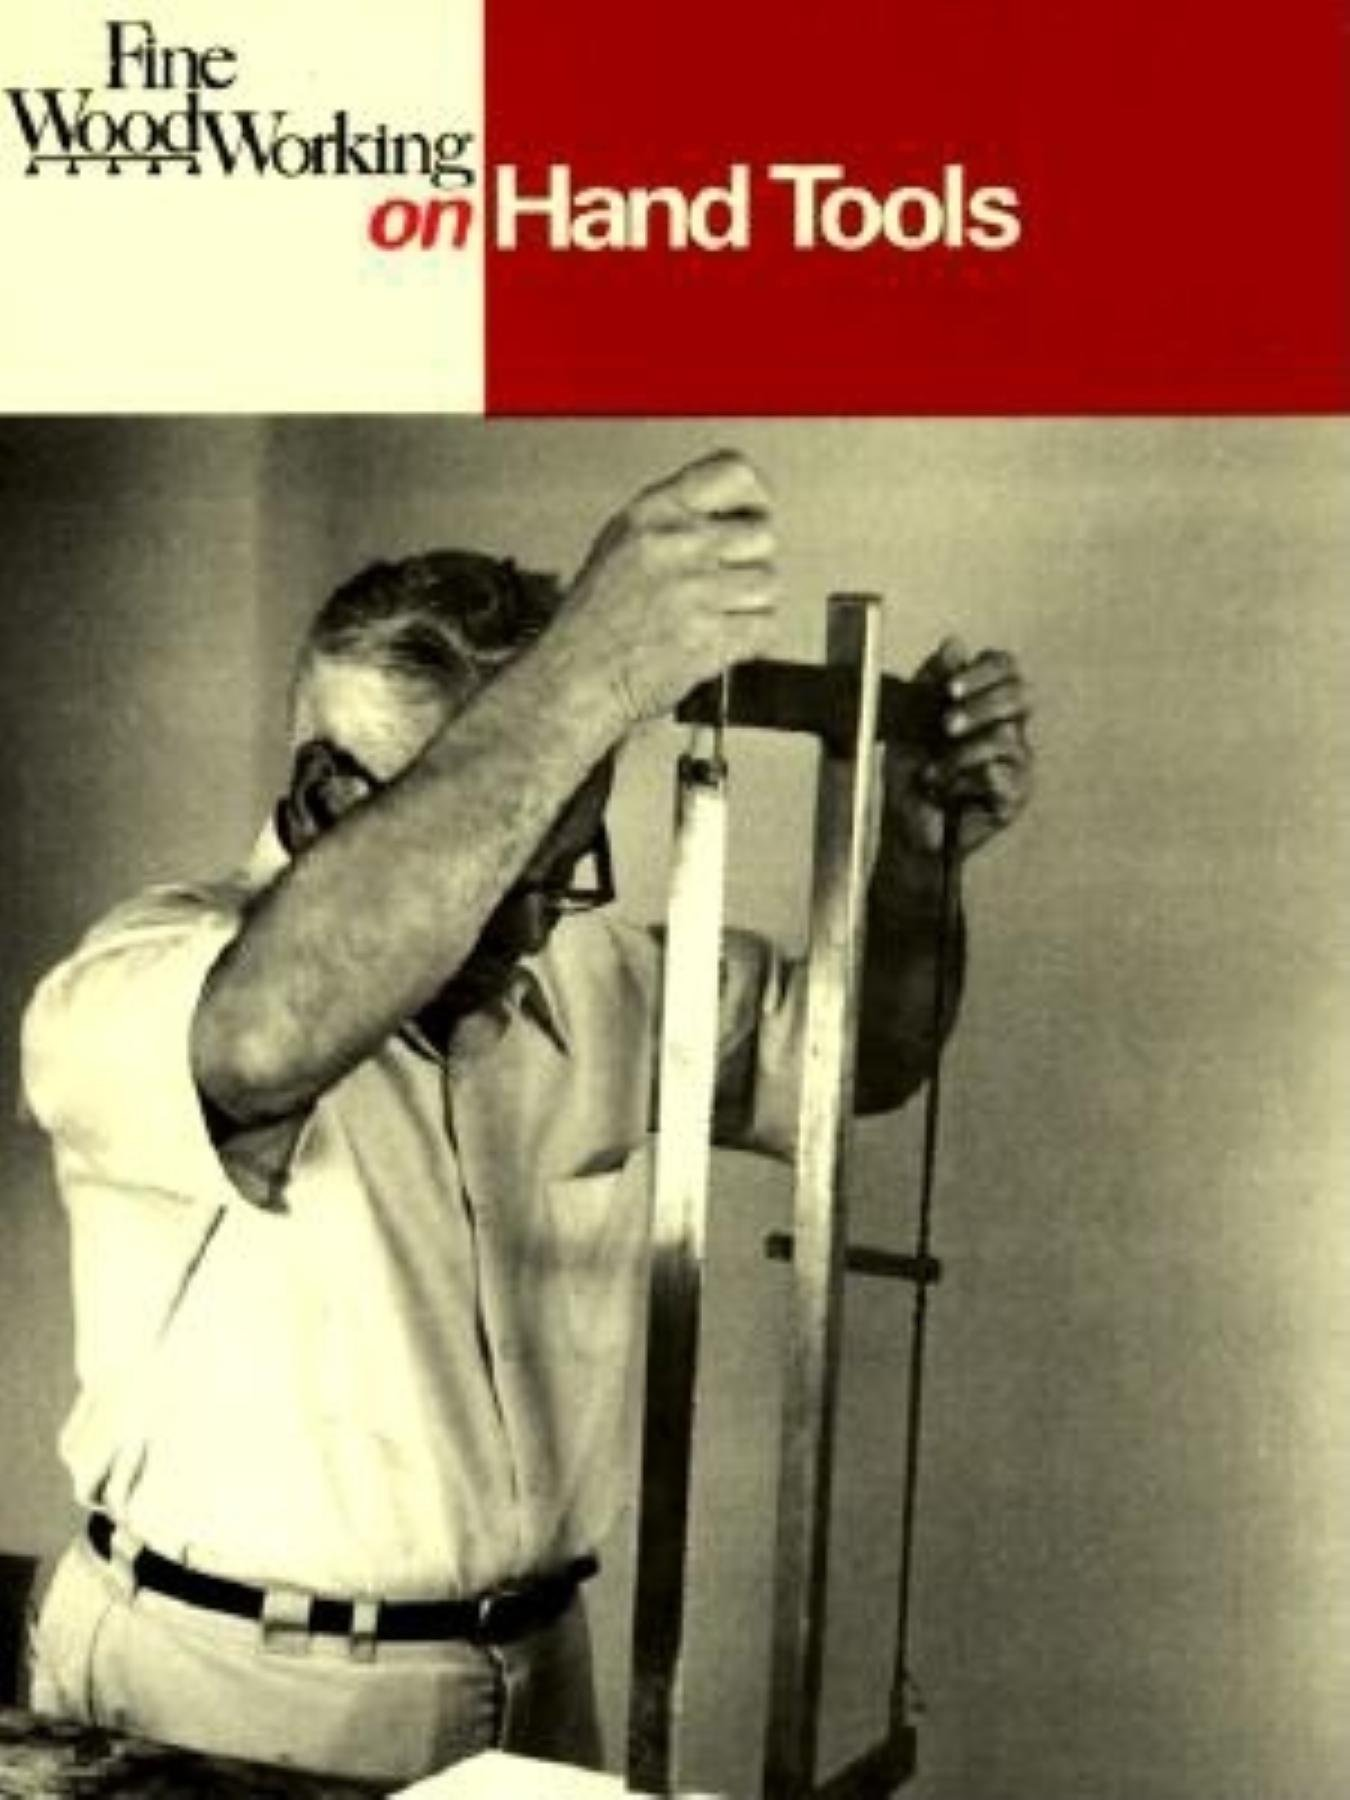 Fine Woodworking On Hand Tools 38 Articles Selected By The Editors